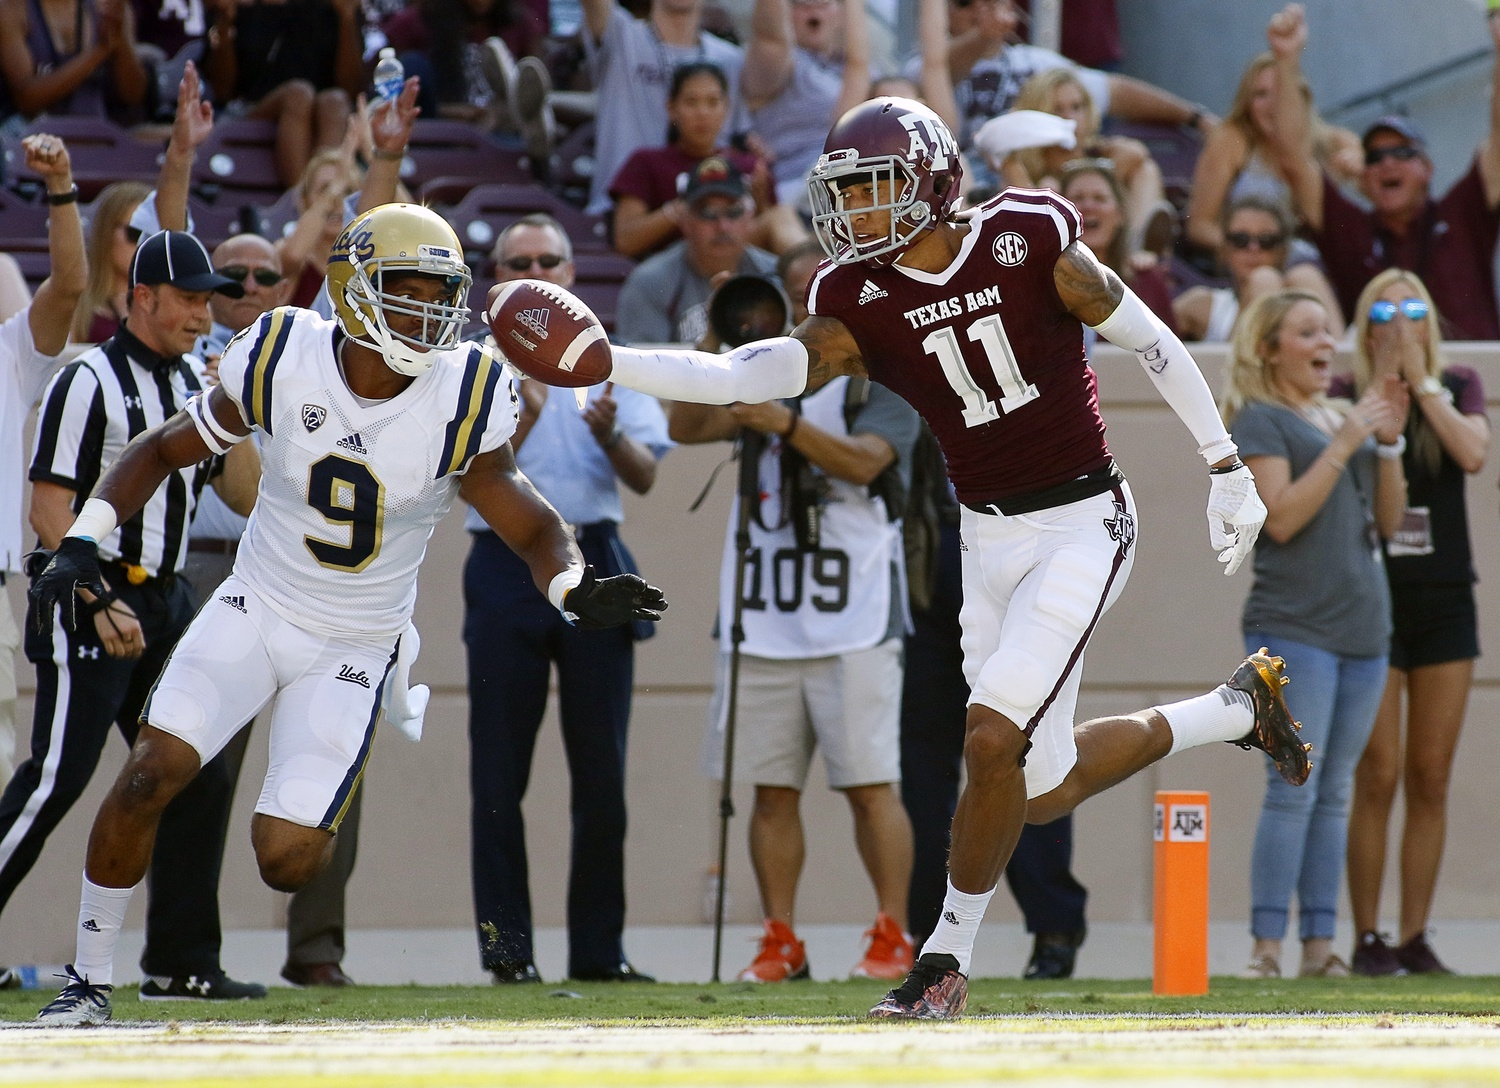 Sep 3, 2016; College Station, TX, USA; Texas A&M Aggies wide receiver Josh Reynolds (11) goes in the for a 40-yard touchdown catch against UCLA Bruins defensive back Marcus Rios (9) during the second half at Kyle Field. Texas A&M won in overtime 31-24. Mandatory Credit: Ray Carlin-USA TODAY Sports